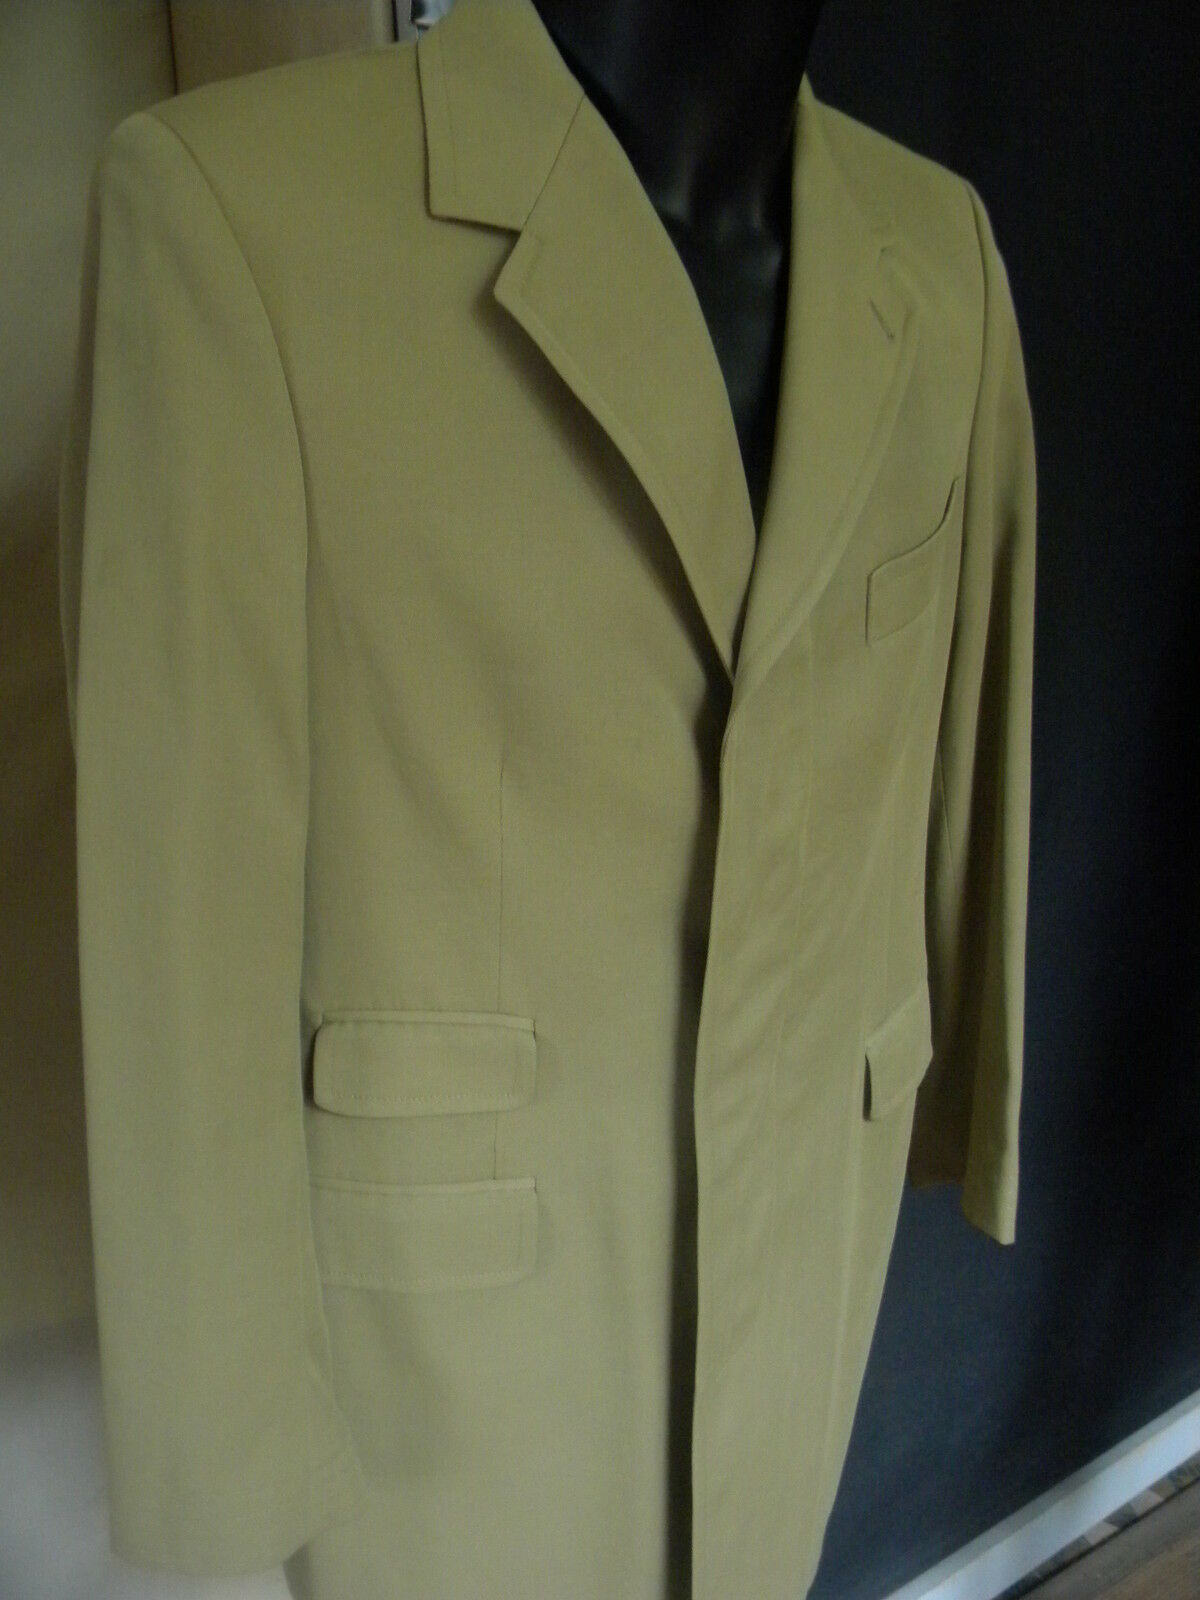 PAUL SMITH MANTEAU FABRIQUE EN ANGLETERRE BEIGE US 38 FR 48 LONG COAT ENGLAND